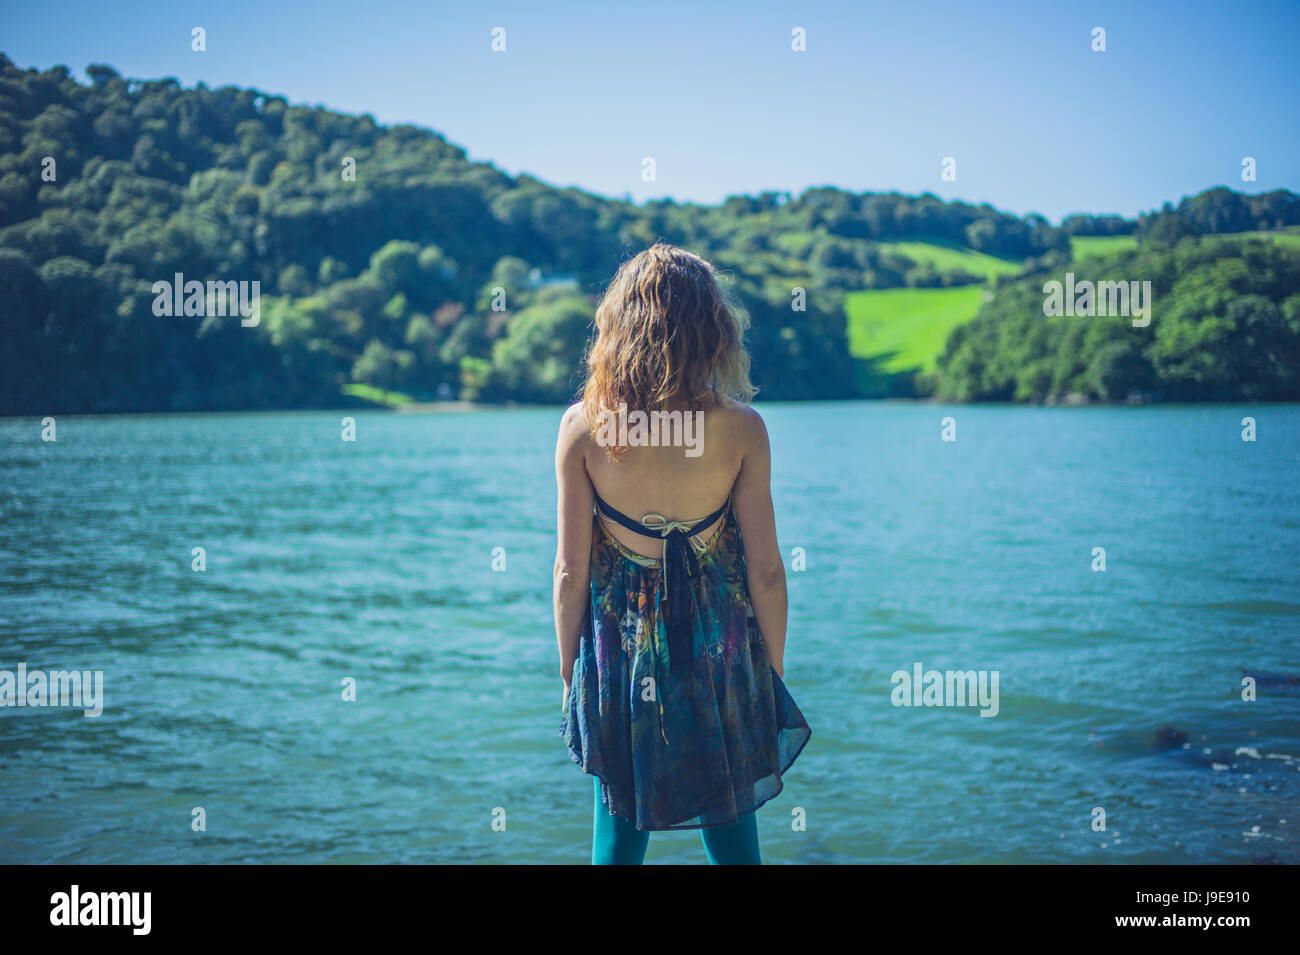 A young woman is standing by the water on a sunny summer's day - Stock Image